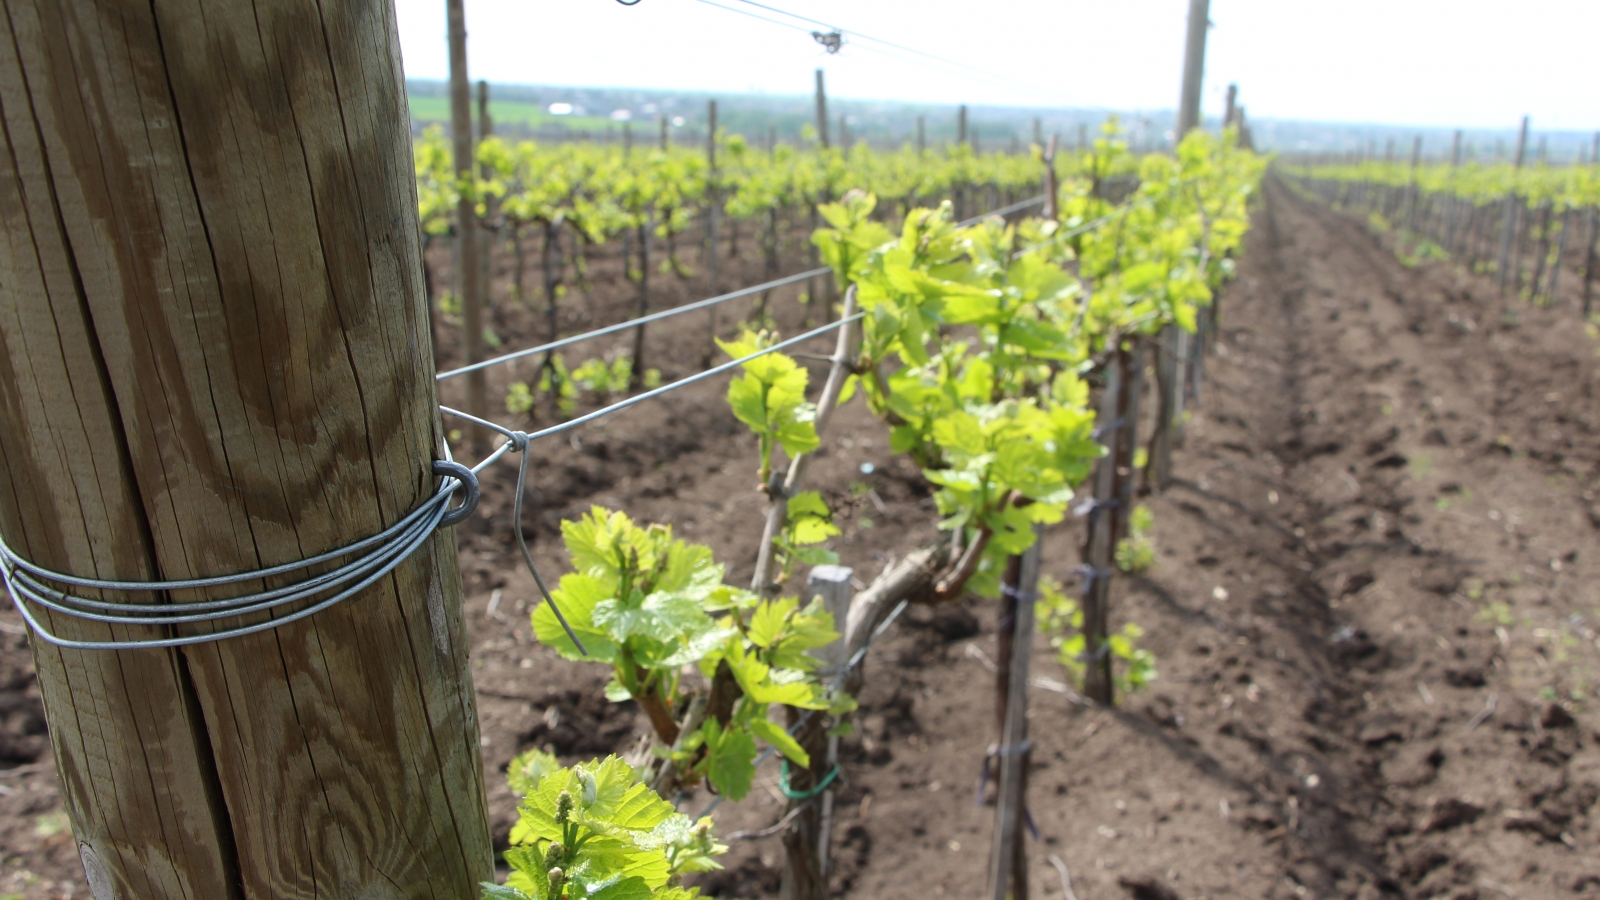 The new vineyards planted by Agrogled company in the South of Moldova